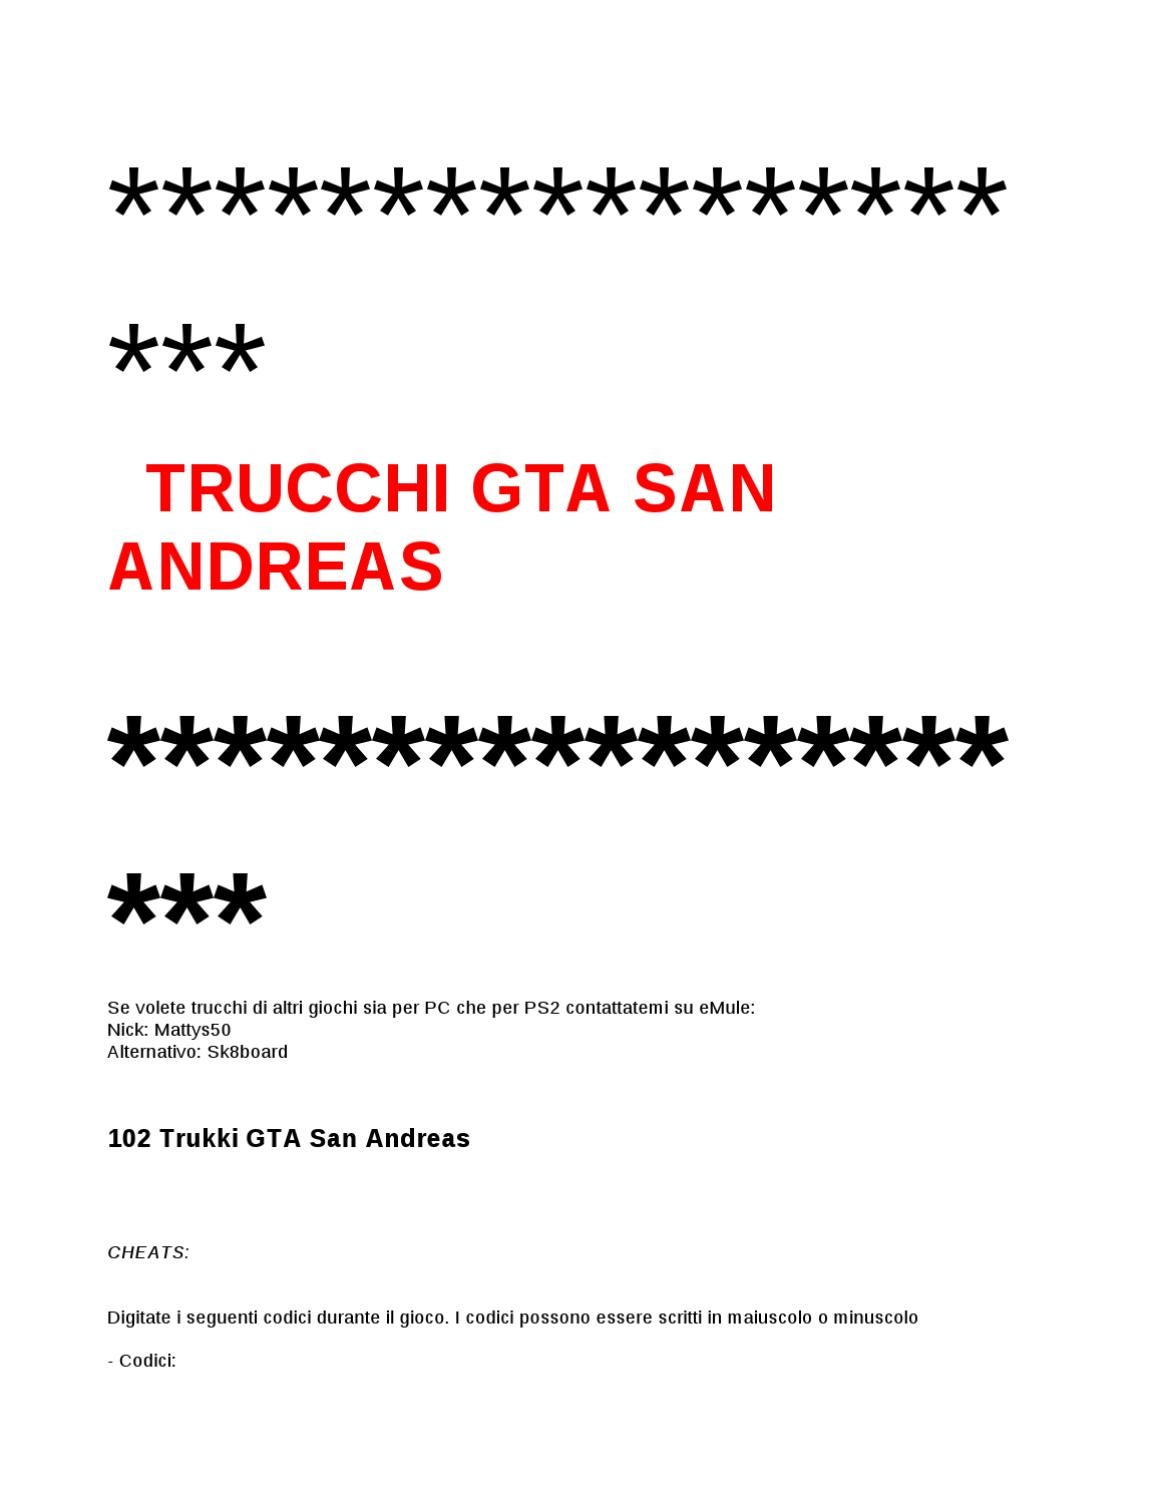 100 trucos GTA San Andreas PC & PS2 by a feds - issuu